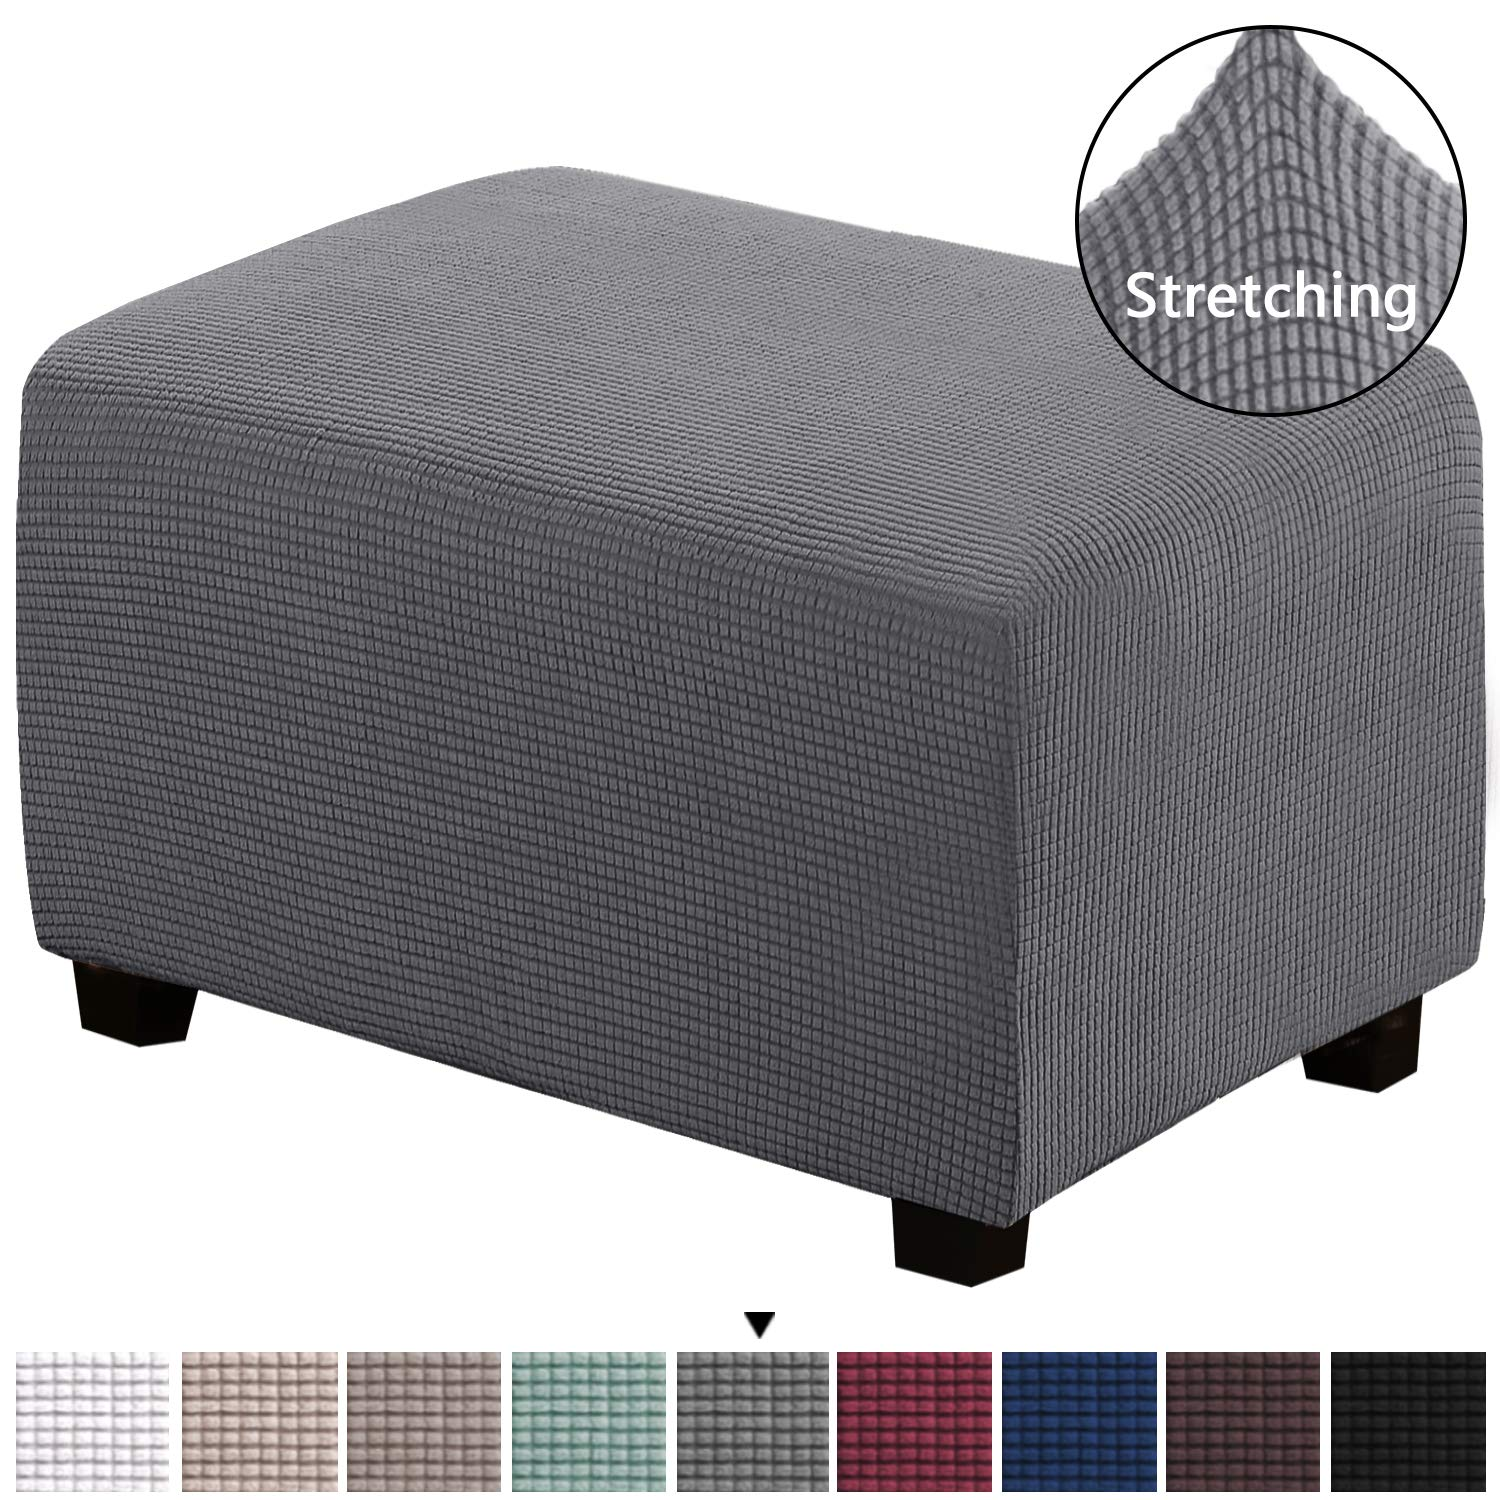 Stretch 1-Piece Storage Ottoman Slipcover Spandex Elastic Rectangle Footstool Sofa Cover for Living Room, Lycra Furniture Protector Machine Washable Spandex Ottoman Covers(Oversized, Charcoal Gray)